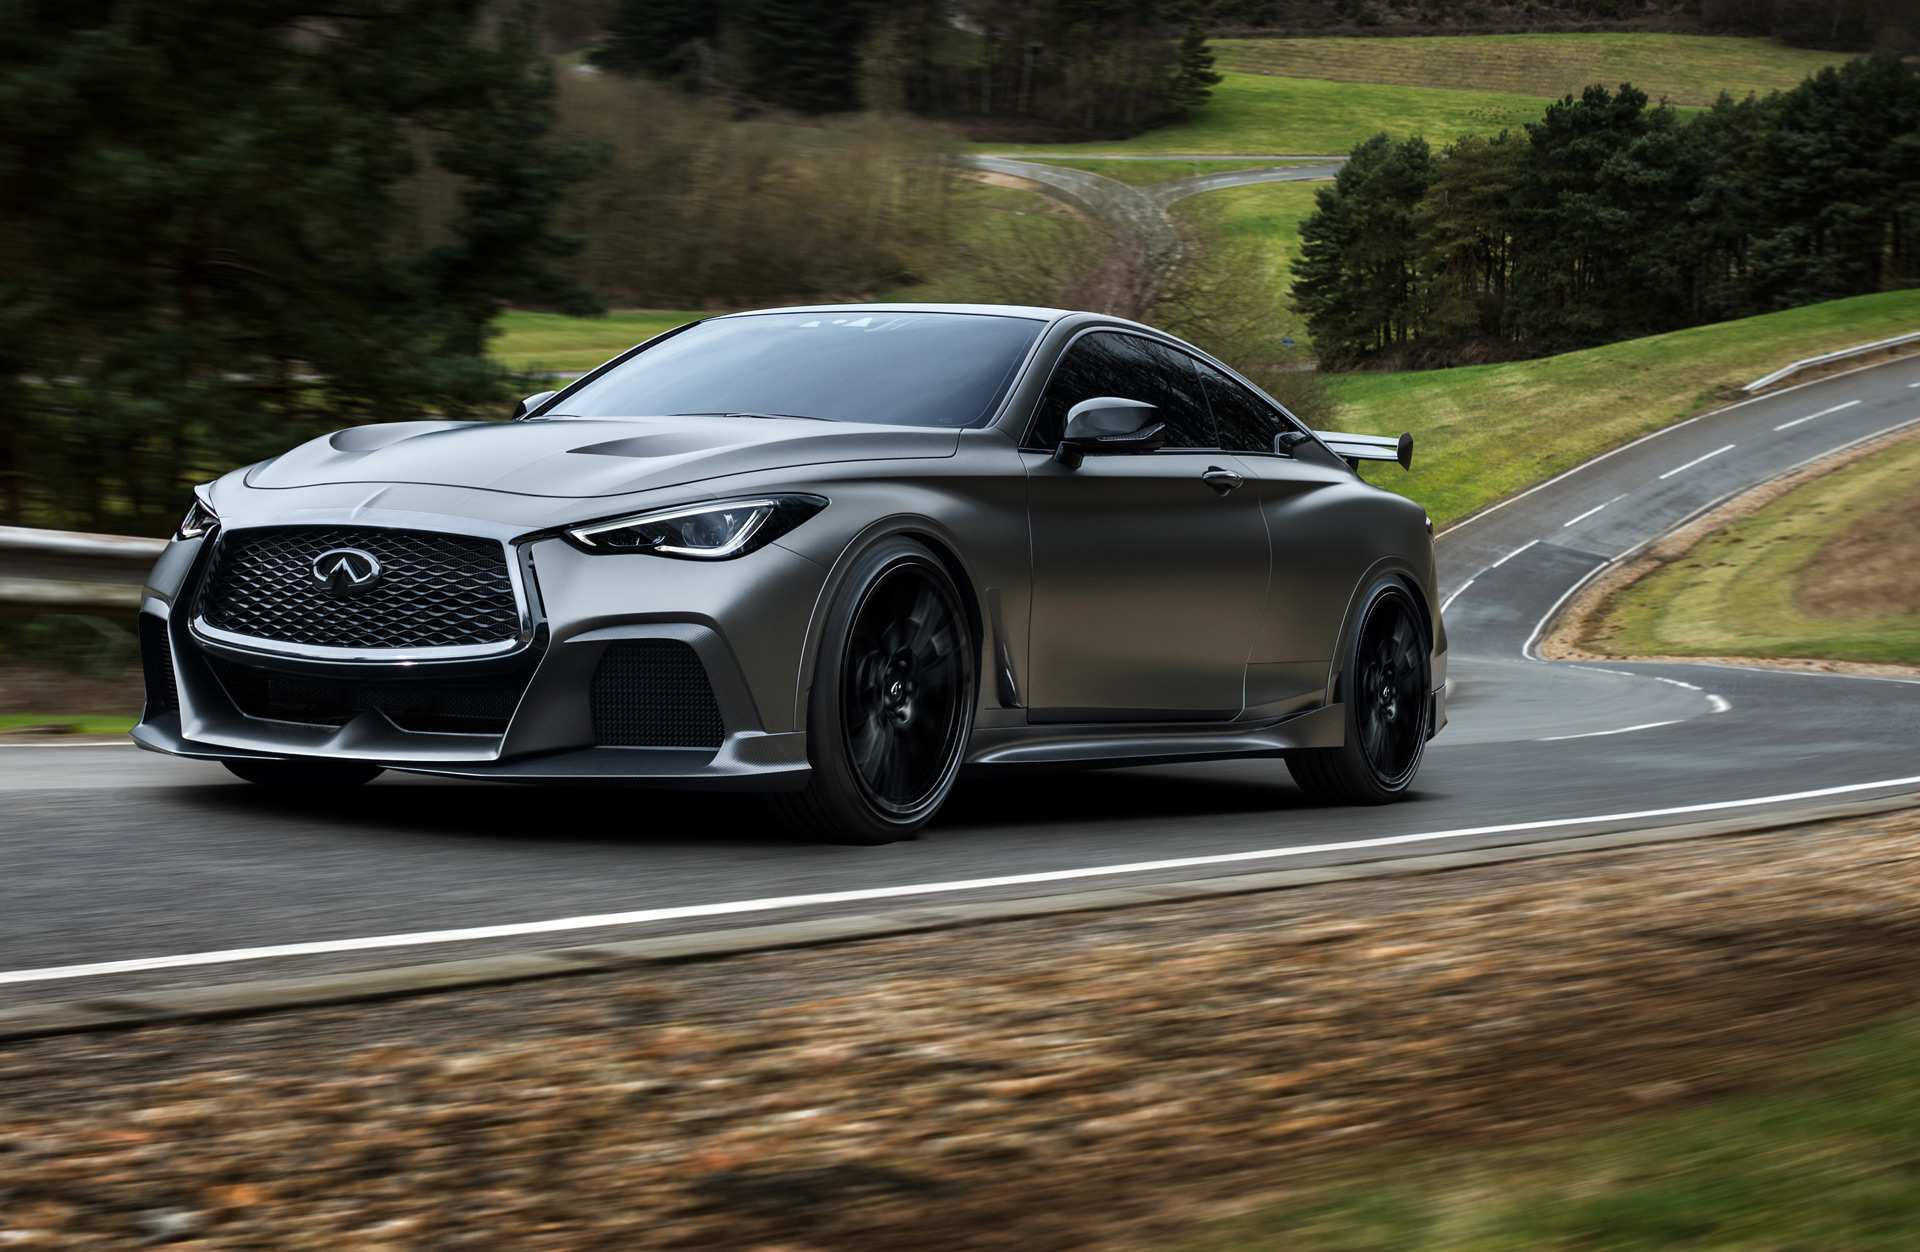 66 All New 2020 Infiniti Q60 Black S Performance And New Engine